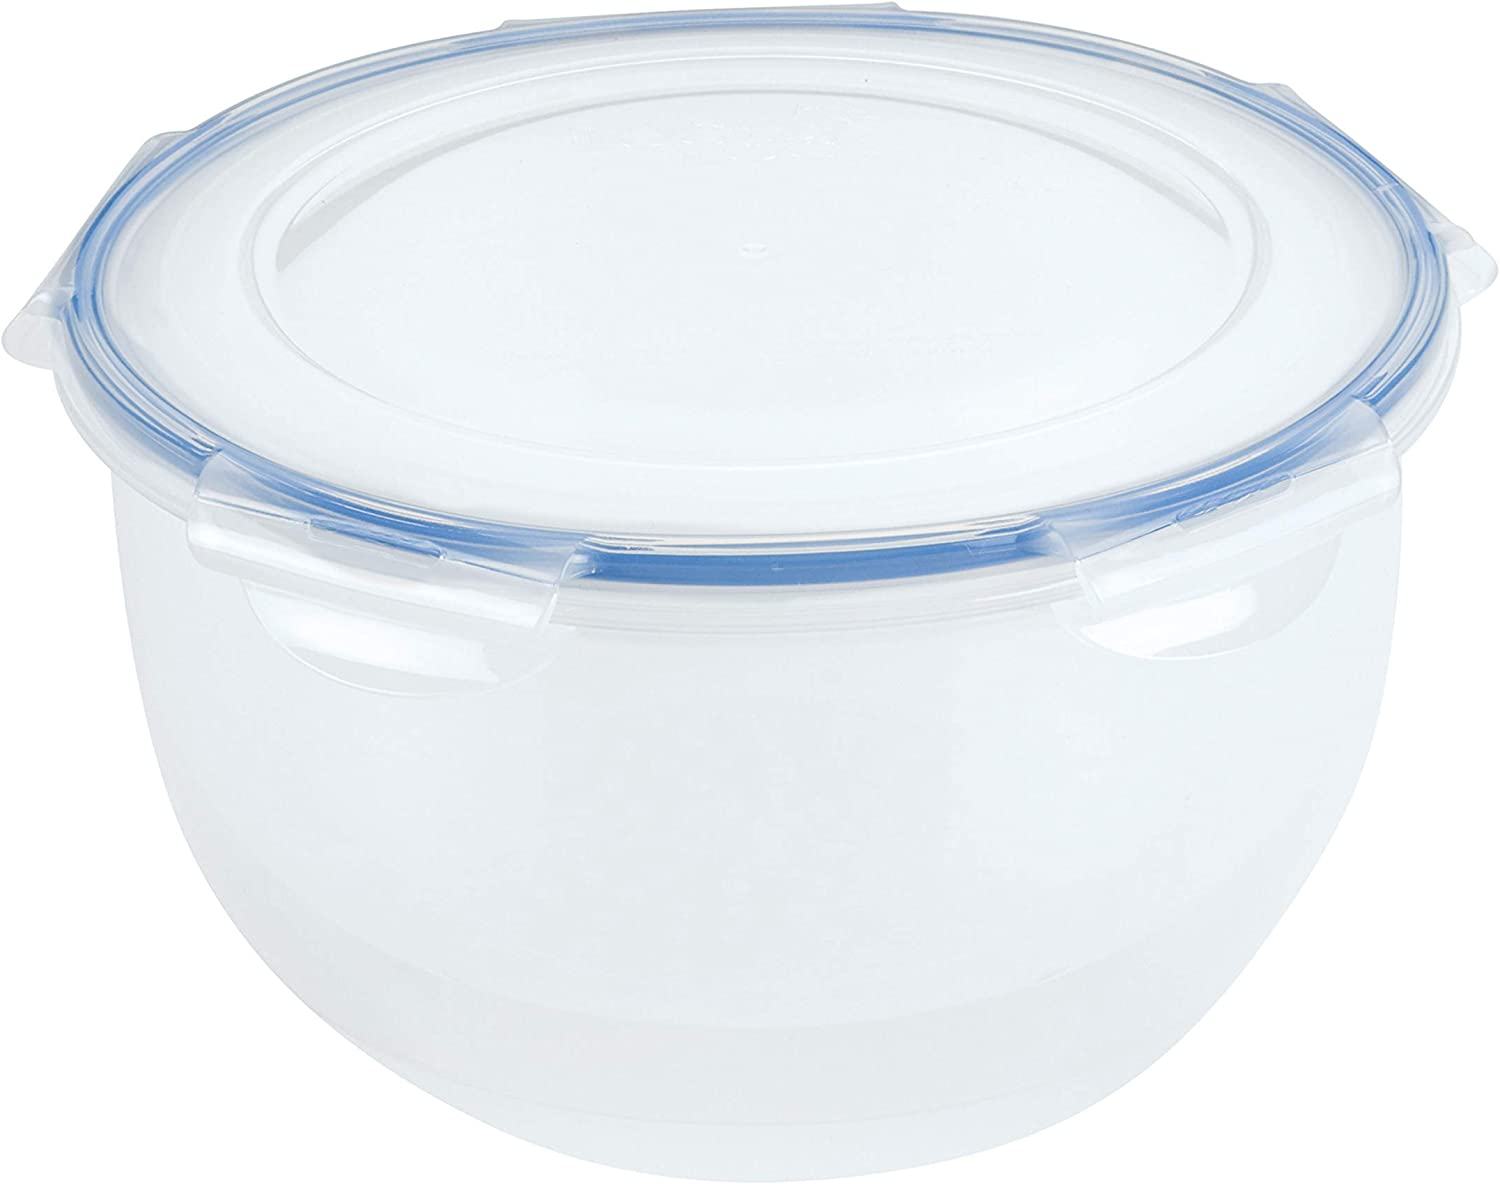 LOCK & LOCK Easy Essentials Food Storage lids/Airtight containers, BPA Free, Salad Bowl-16.9 Cup, Clear